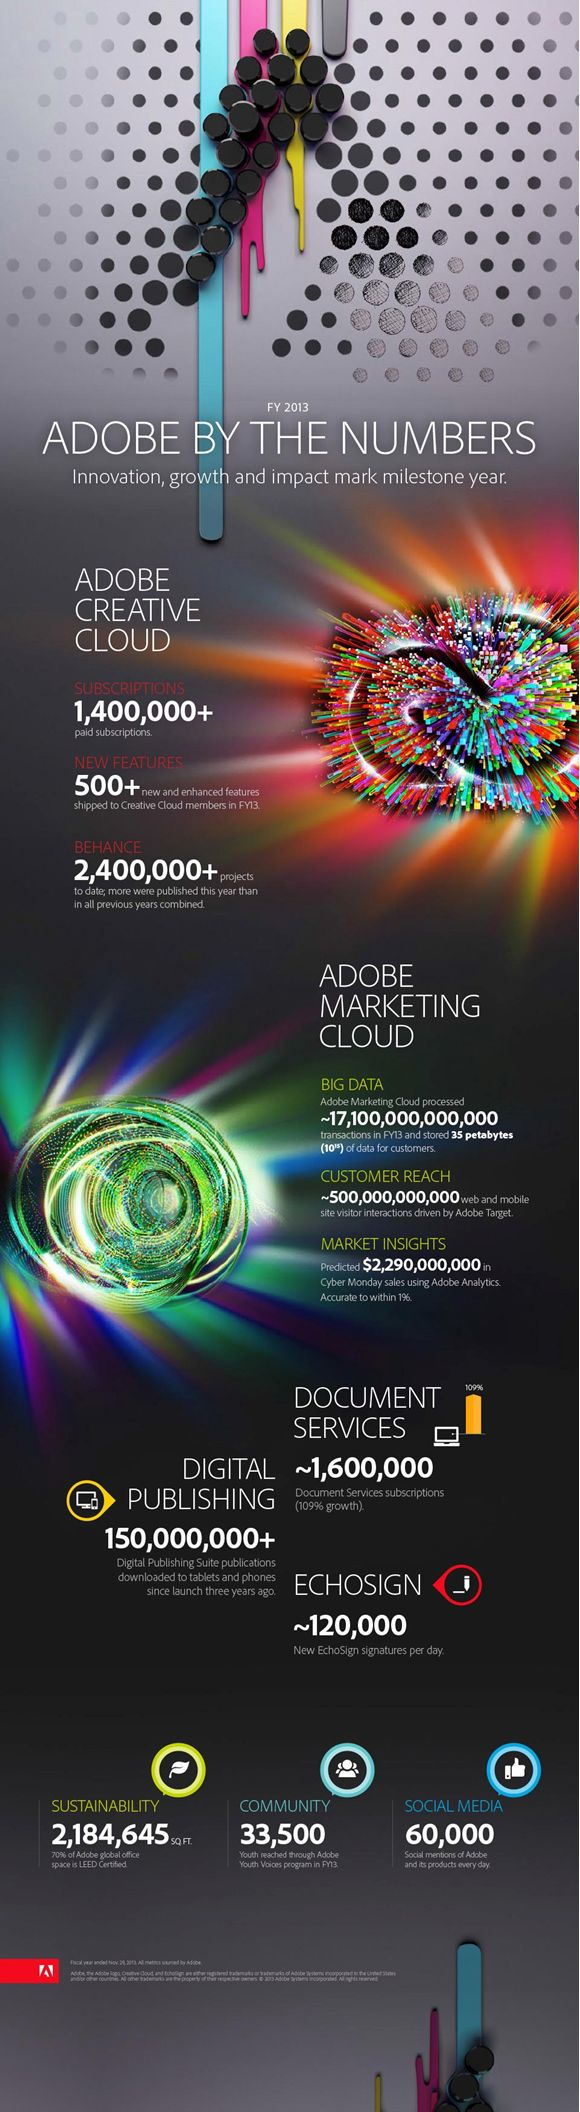 Adobe (ADBE) stock rockets after announcing ontarget